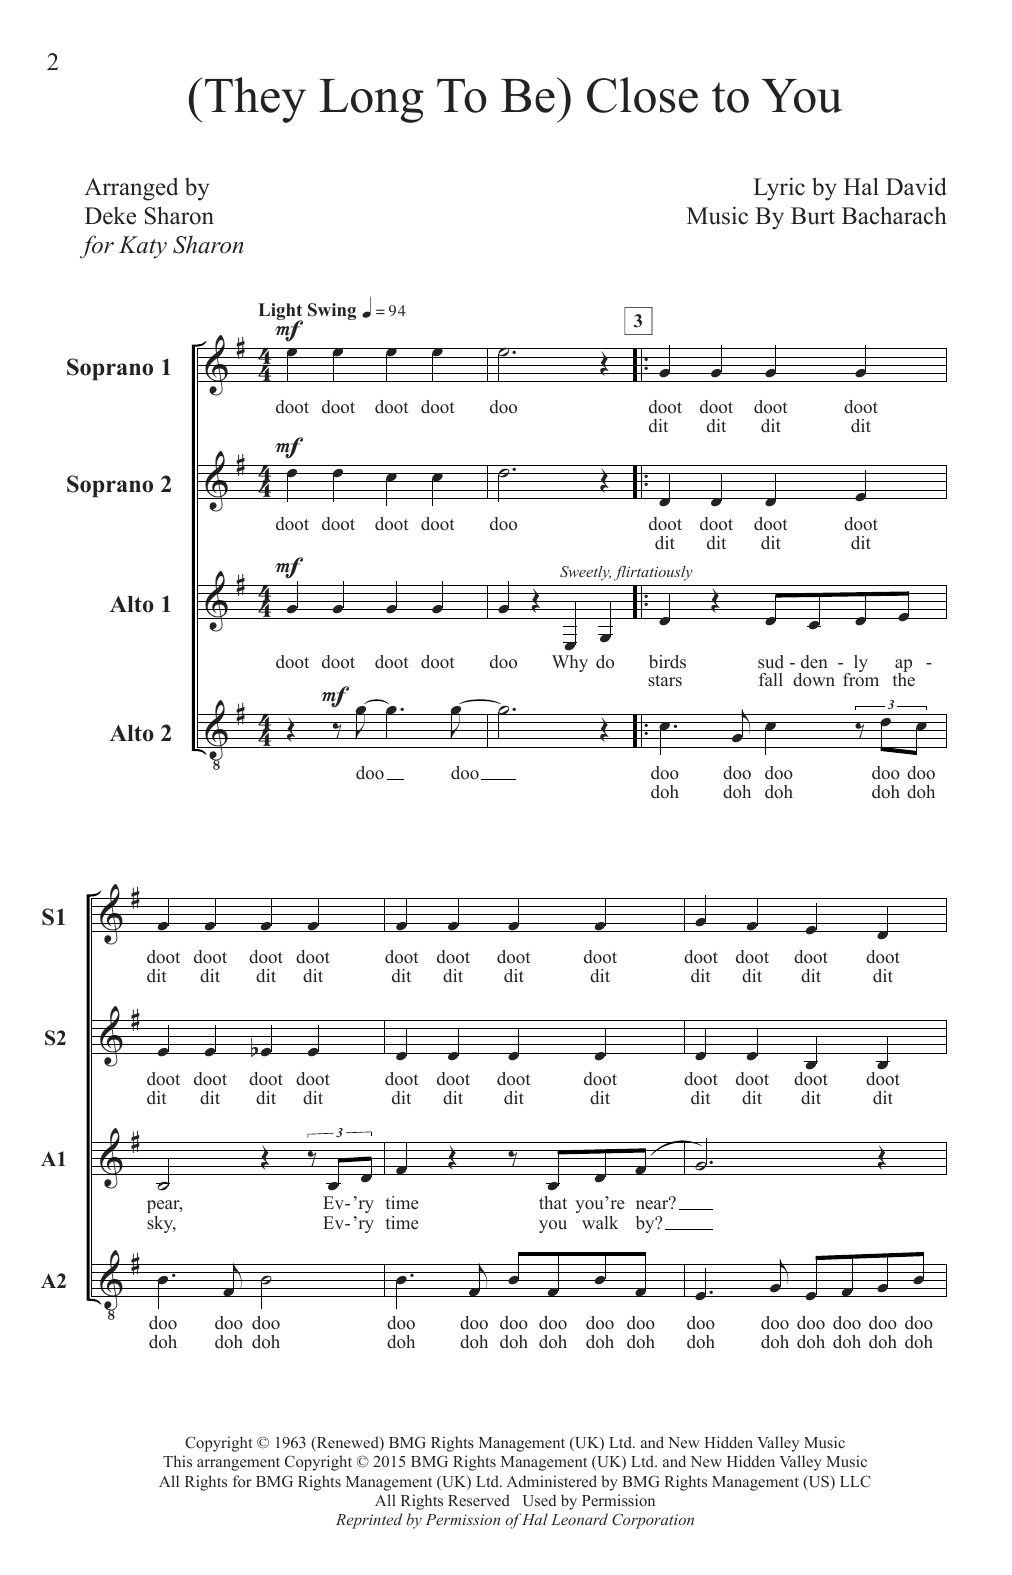 (They Long To Be) Close To You (arr. Deke Sharon) Sheet Music